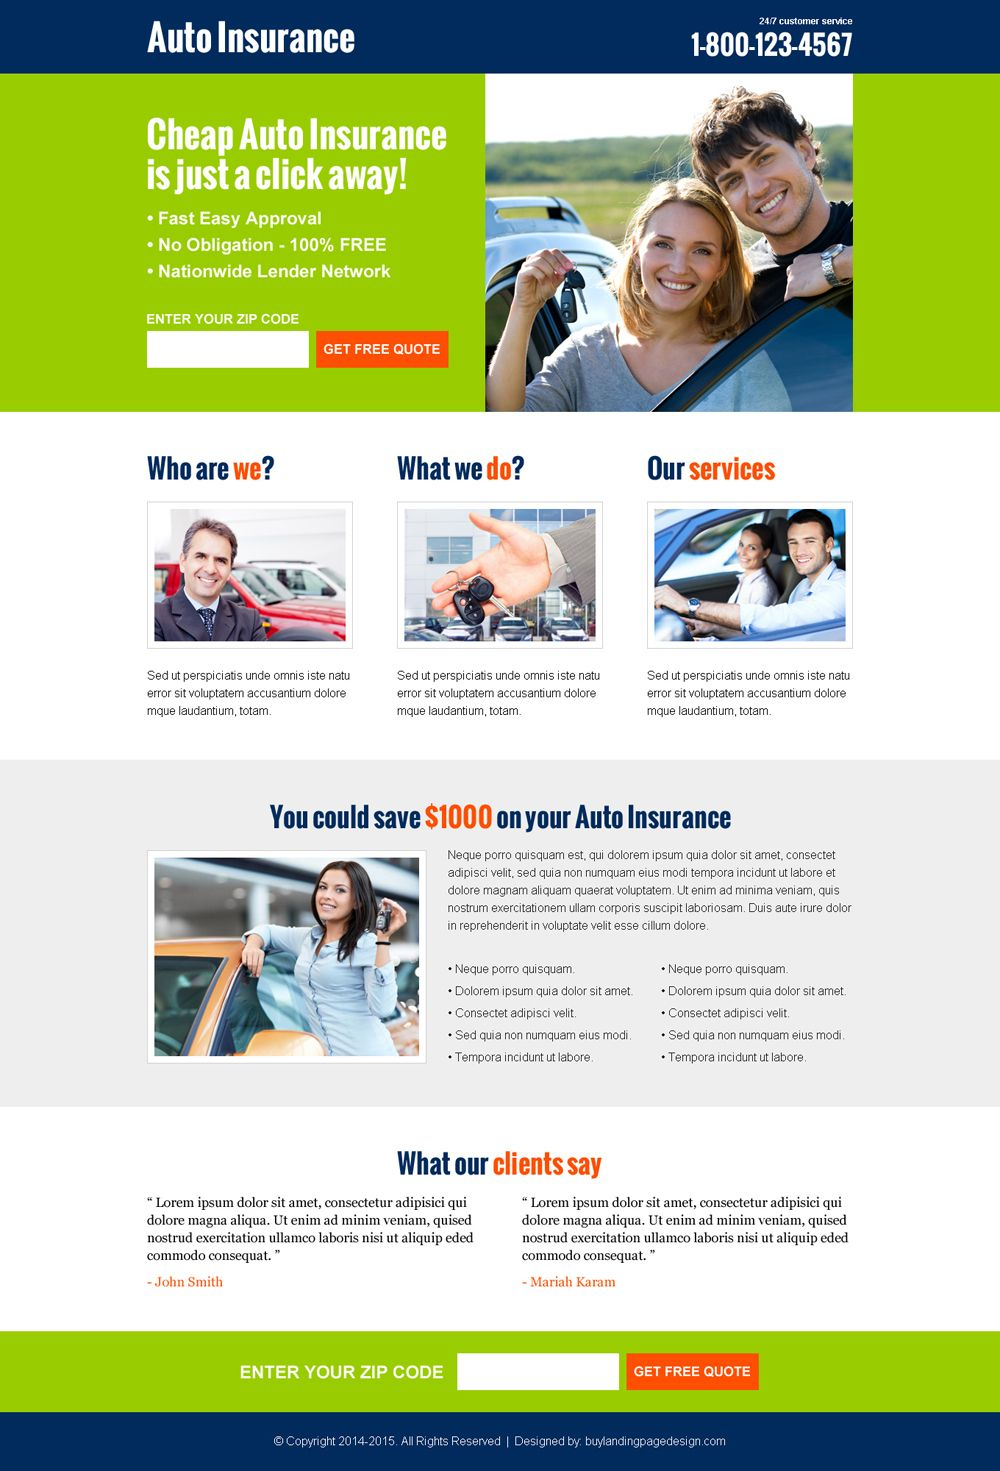 Cheap Auto Insurance Free Quote Lead Capture Converting Landing